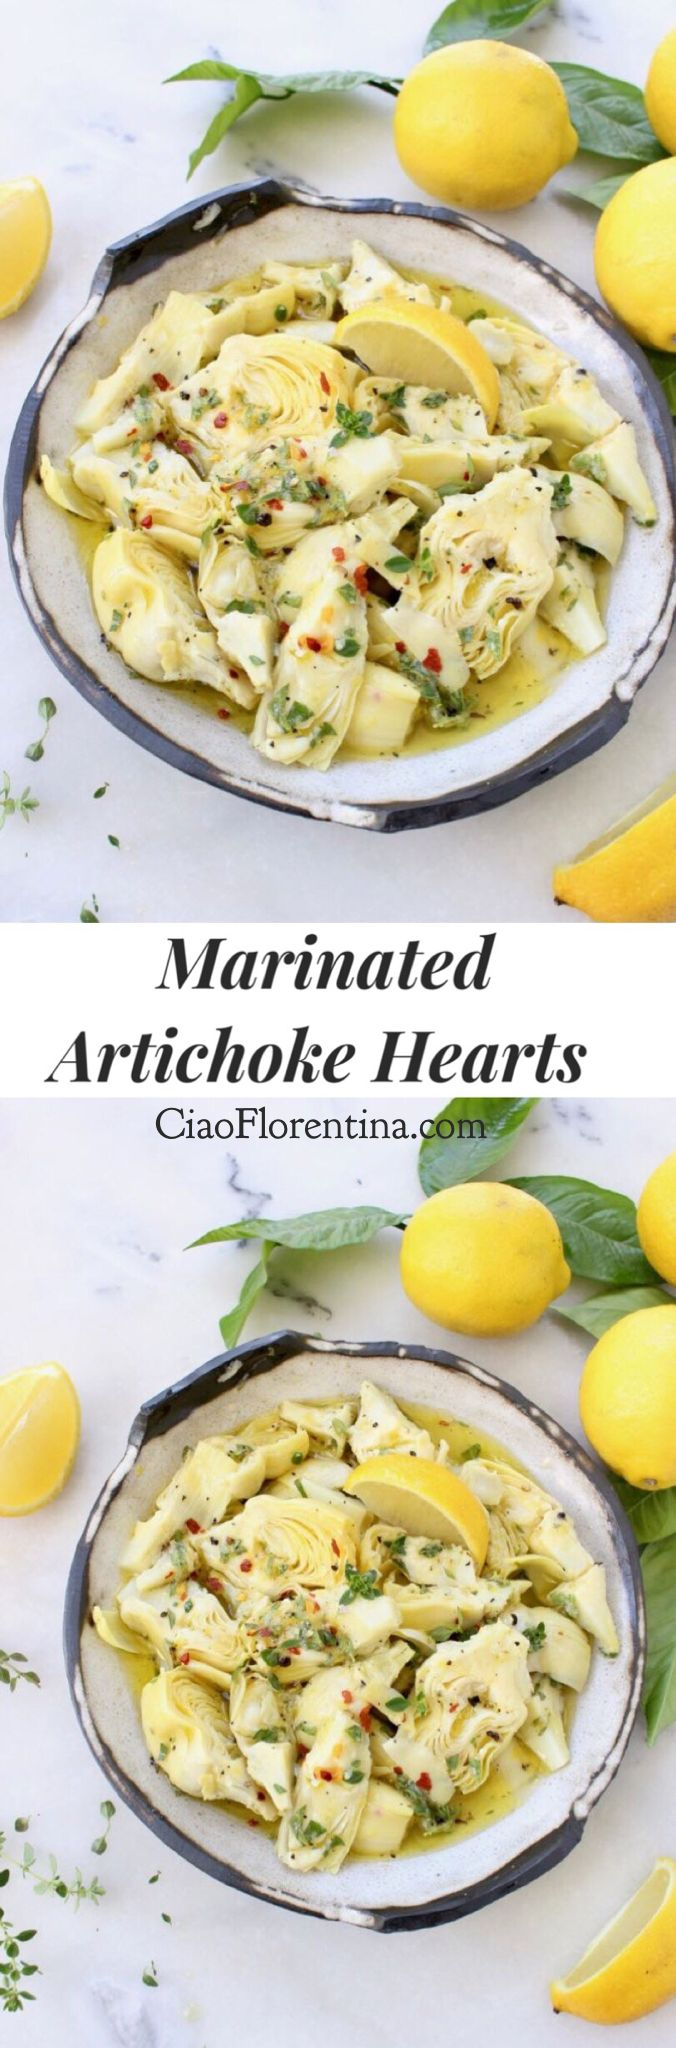 Marinated Artichoke Hearts Recipe in a Lemon Garlic Marinade that is Easy and Good For You | Gluten Free + Paleo | CiaoFlorentina.com @CiaoFlorentina